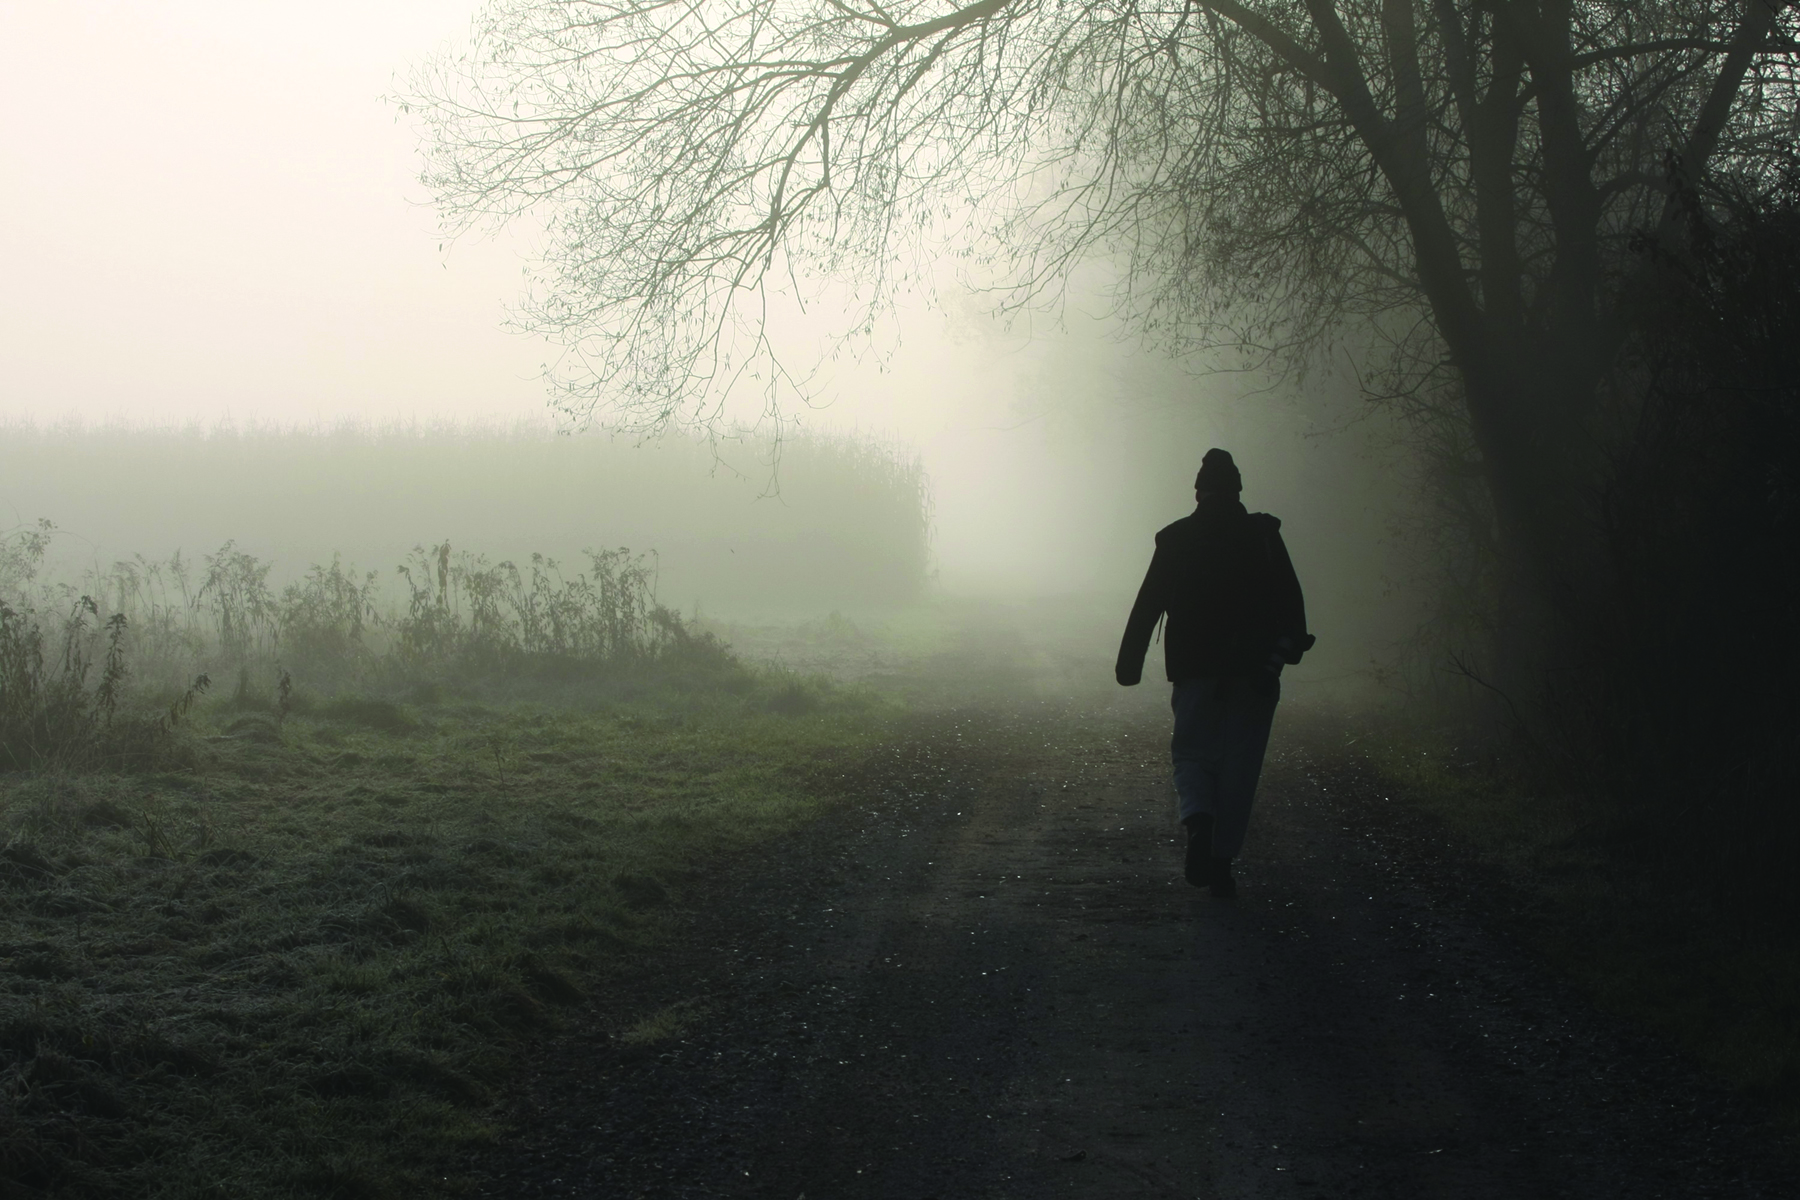 Silhouette of Person Walking Down Dirt Road in Fog